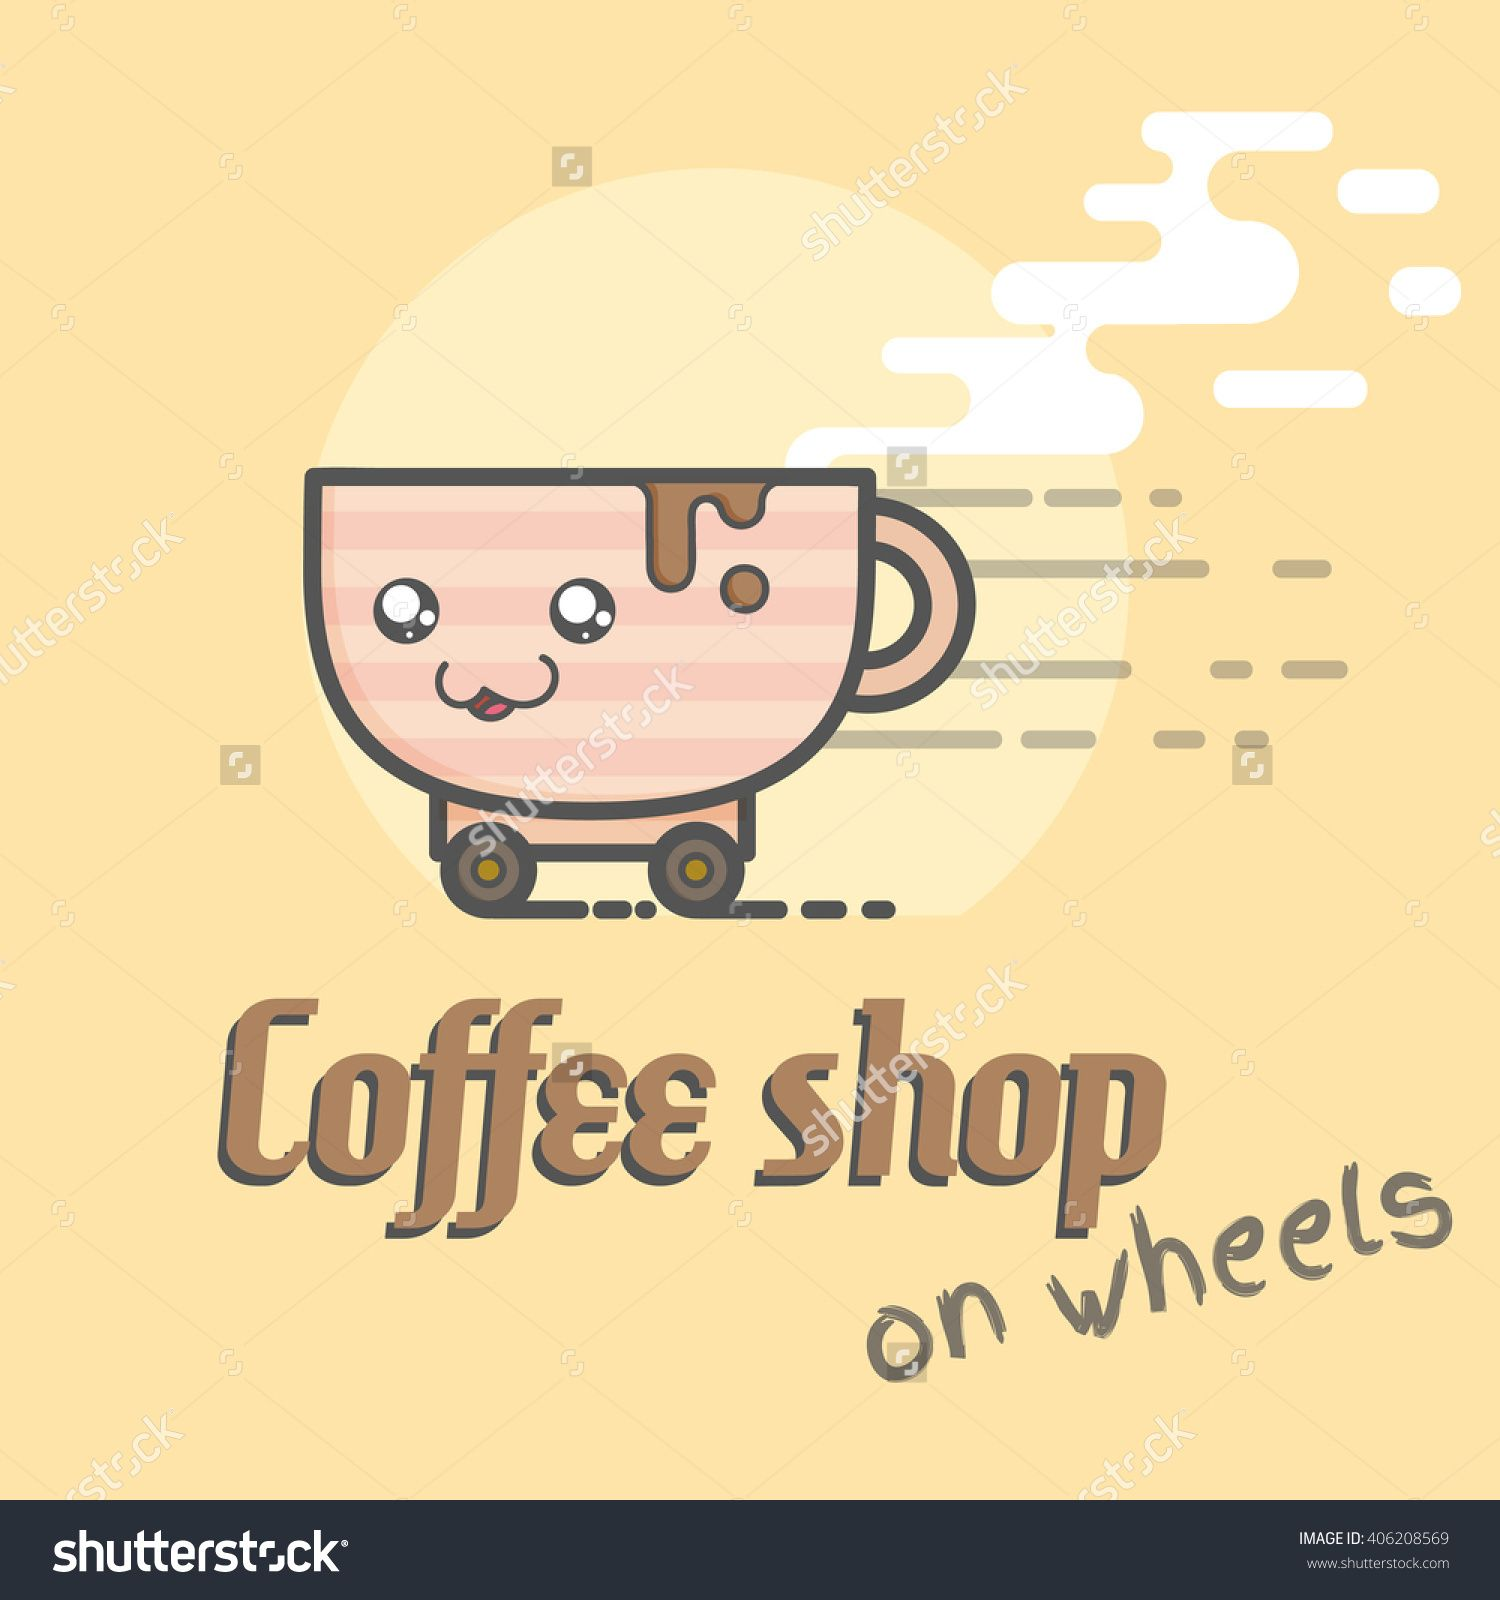 Cute Cup Of Coffee Logo For Coffee Shop On Wheels Stock